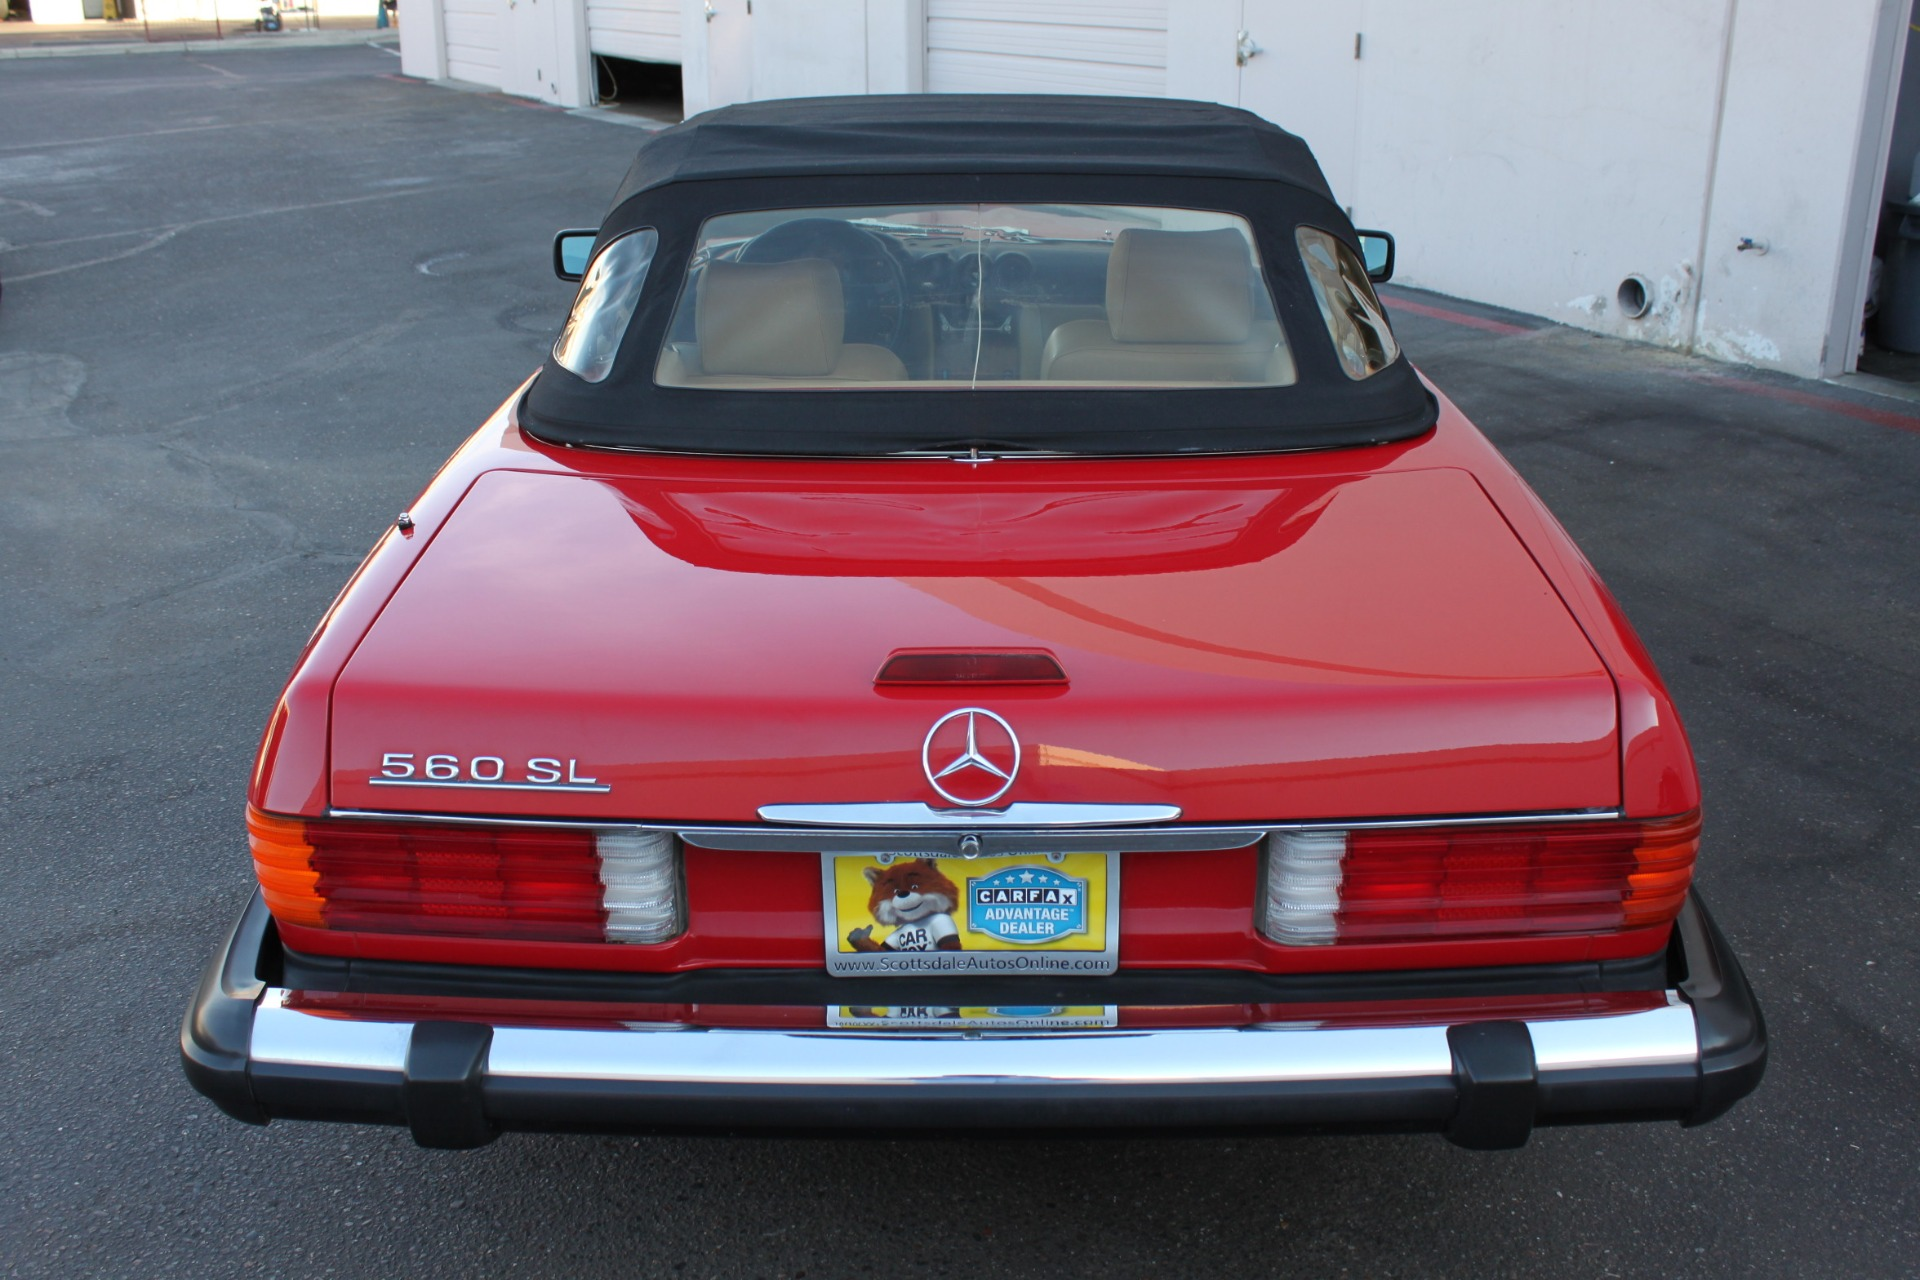 Used-1989-Mercedes-Benz-560-Series-560SL-Lamborghini